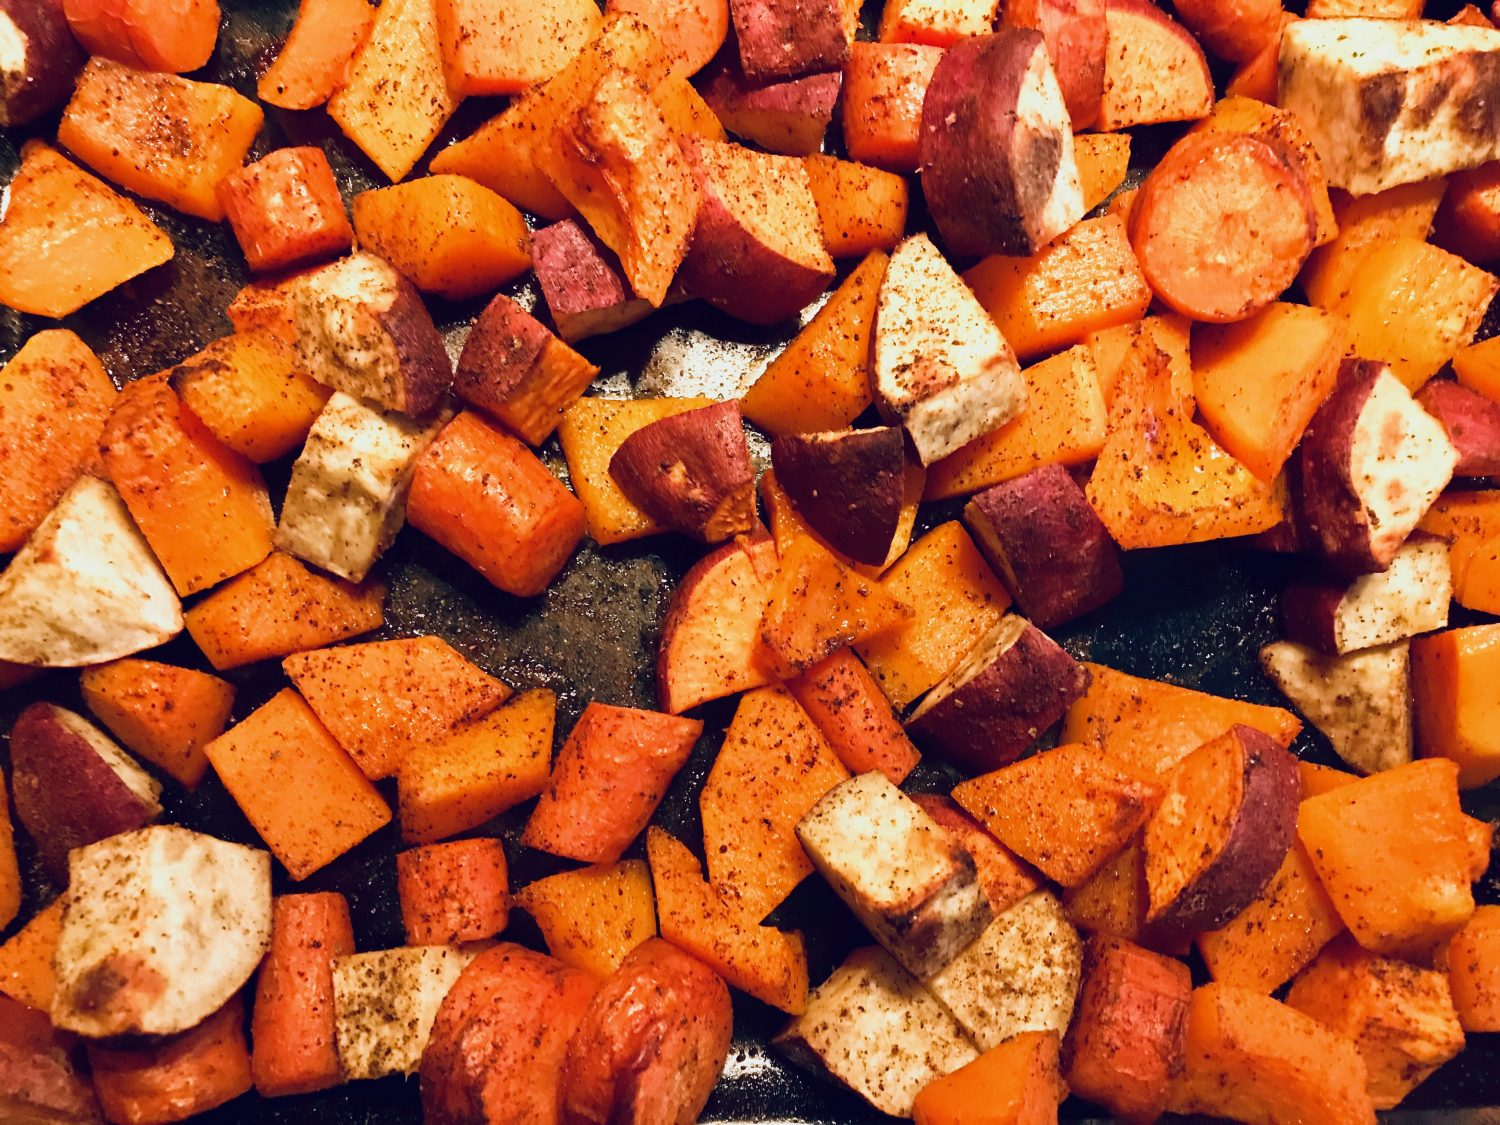 roasted sweet potatoes carrots and butternut squash in a glass baking dish